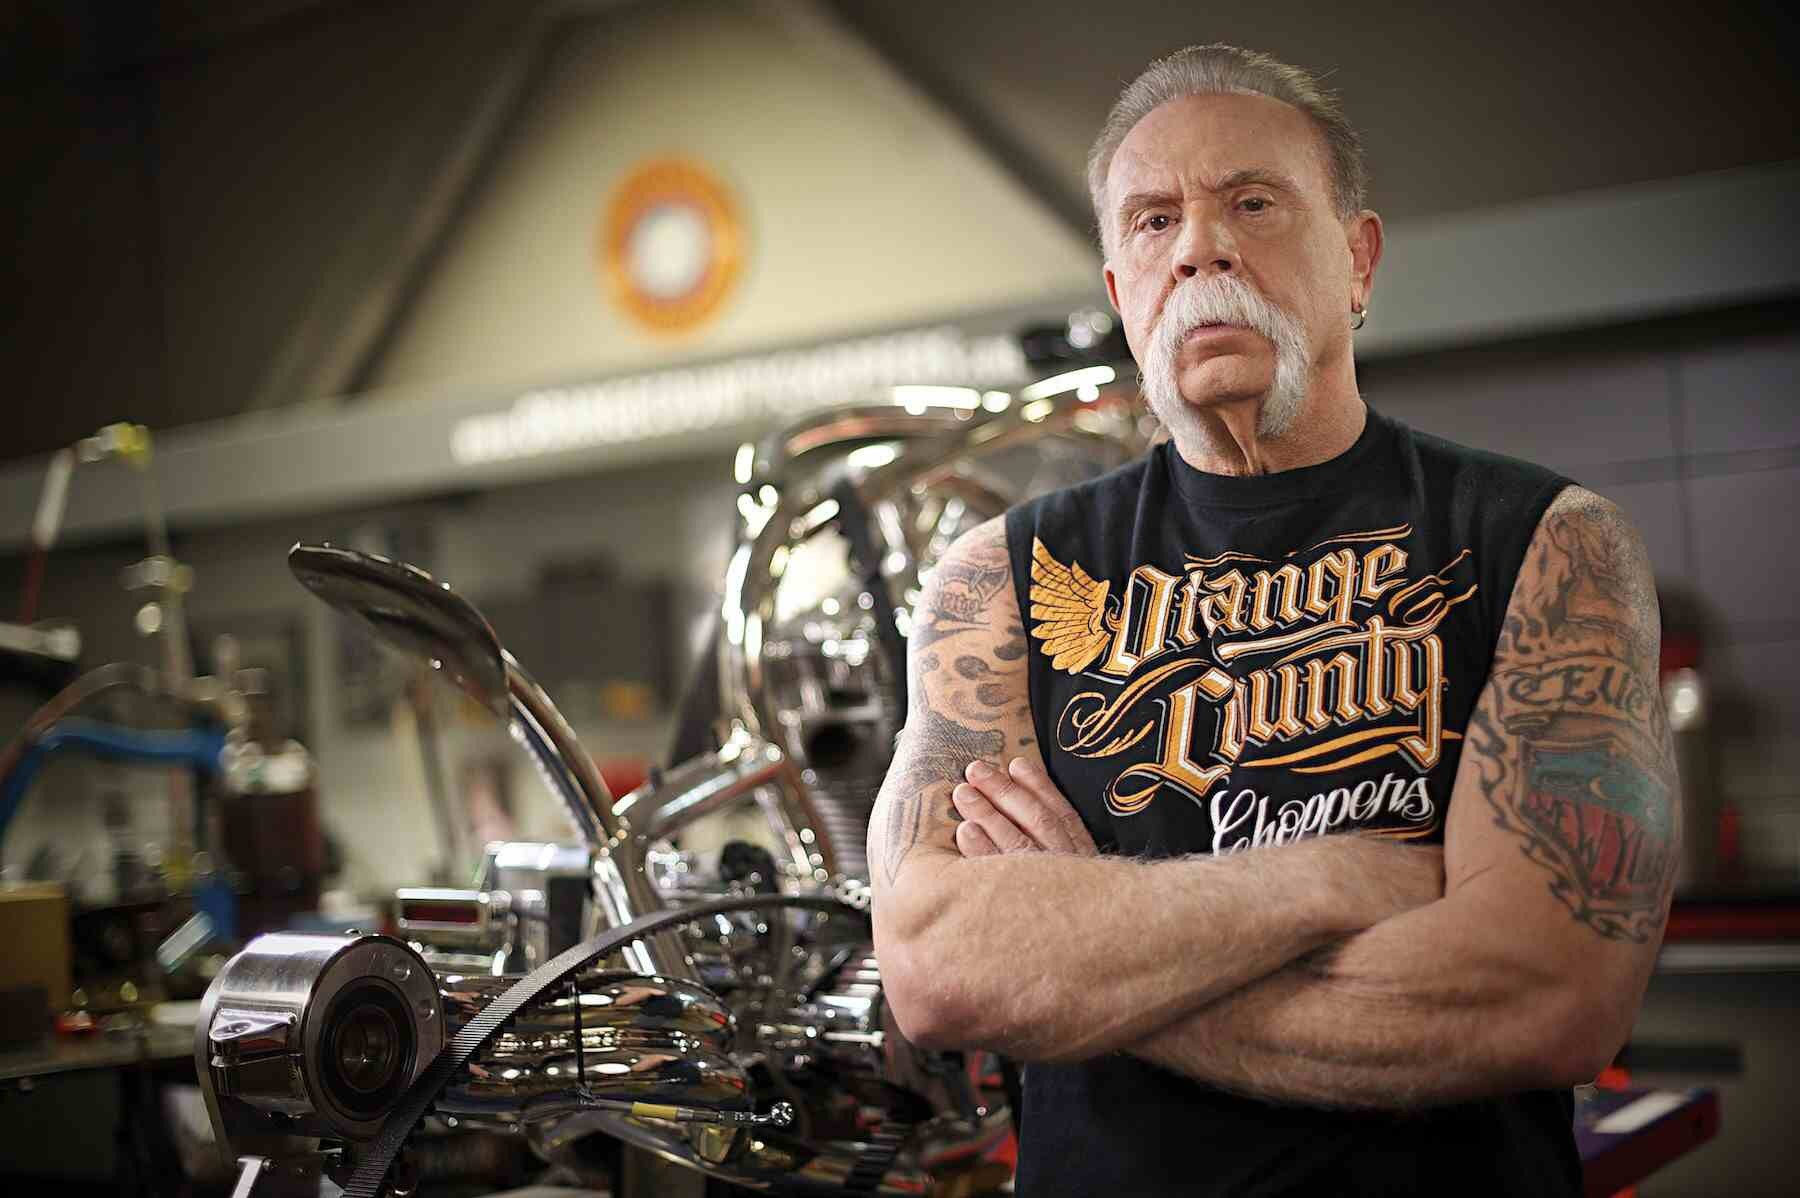 Orange County Choppers - American Chopper nové epizody